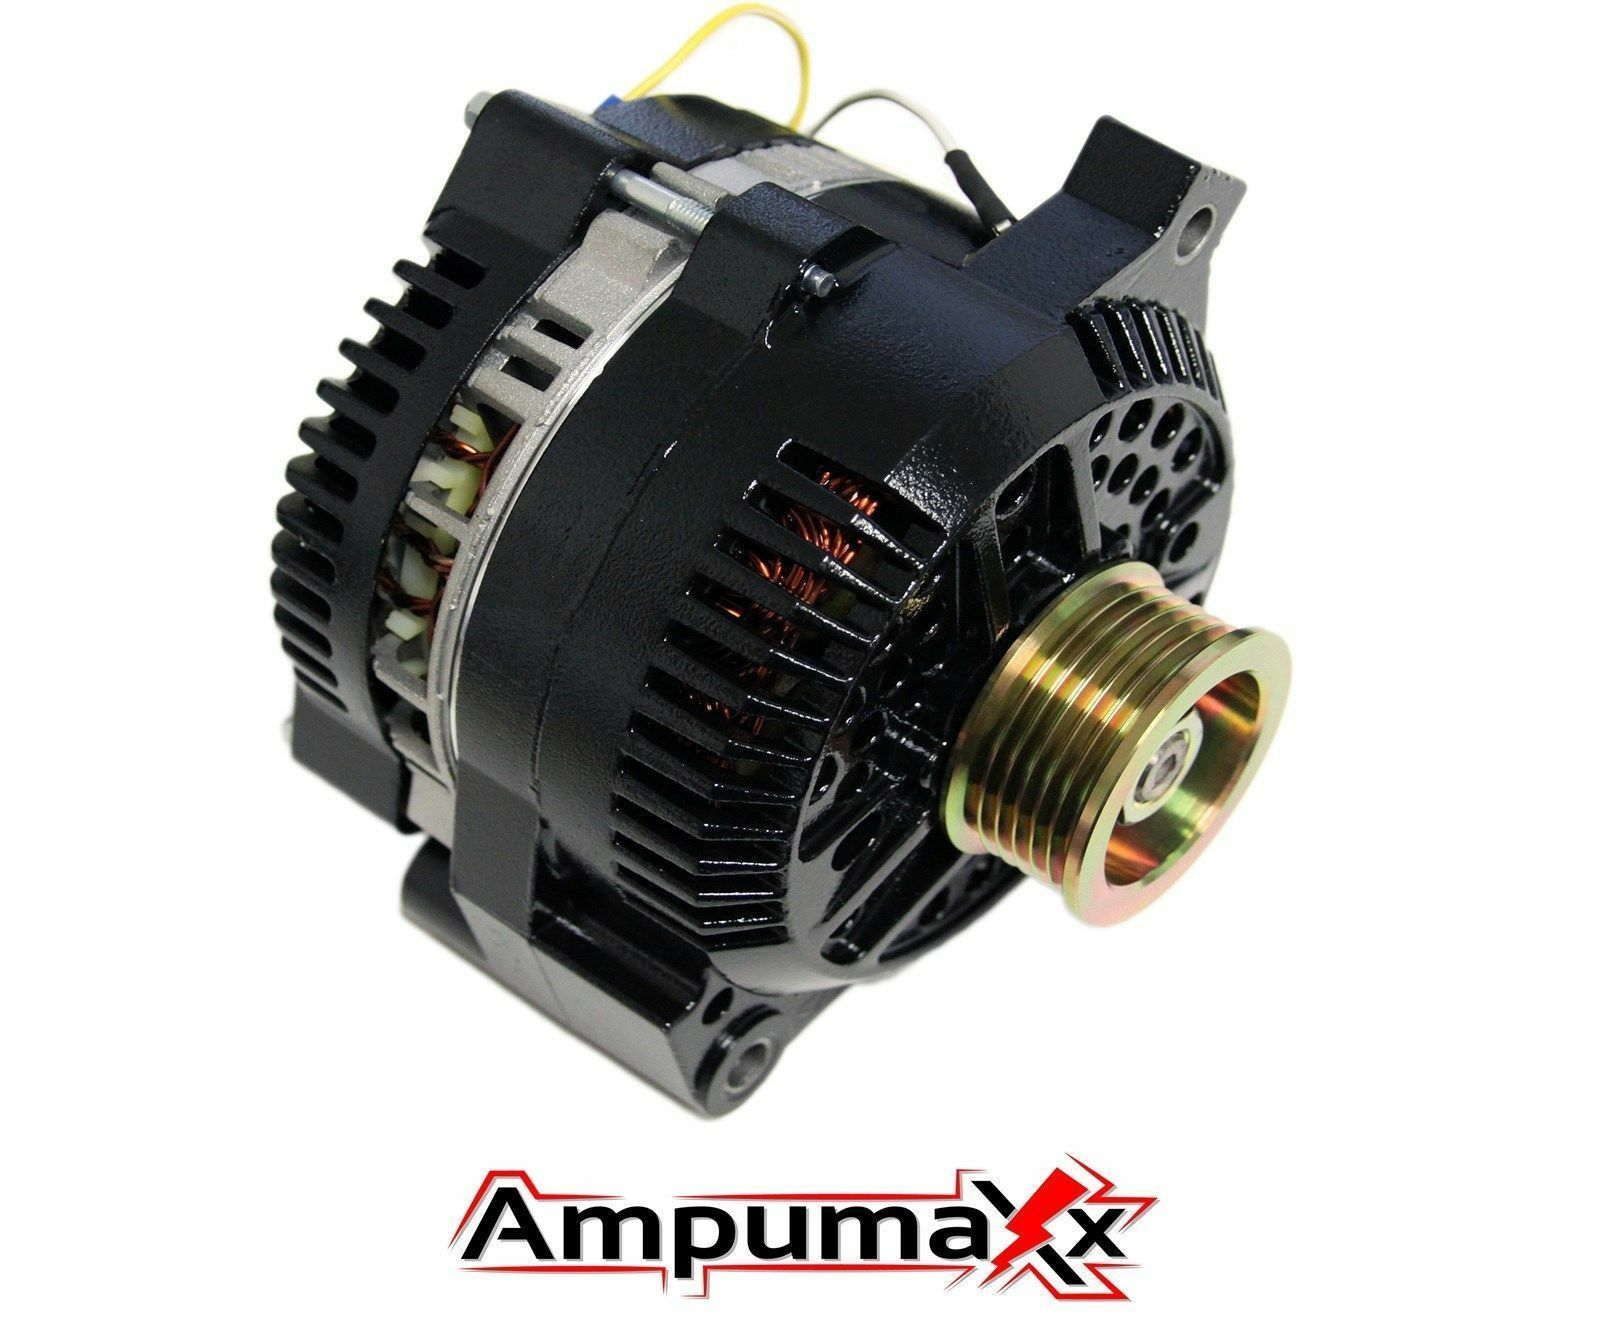 Black One Wire 250 Amp Alternator For Ford Mustang Mercury Cougar Hi Gm 160 Wiring 1 Of 5free Shipping